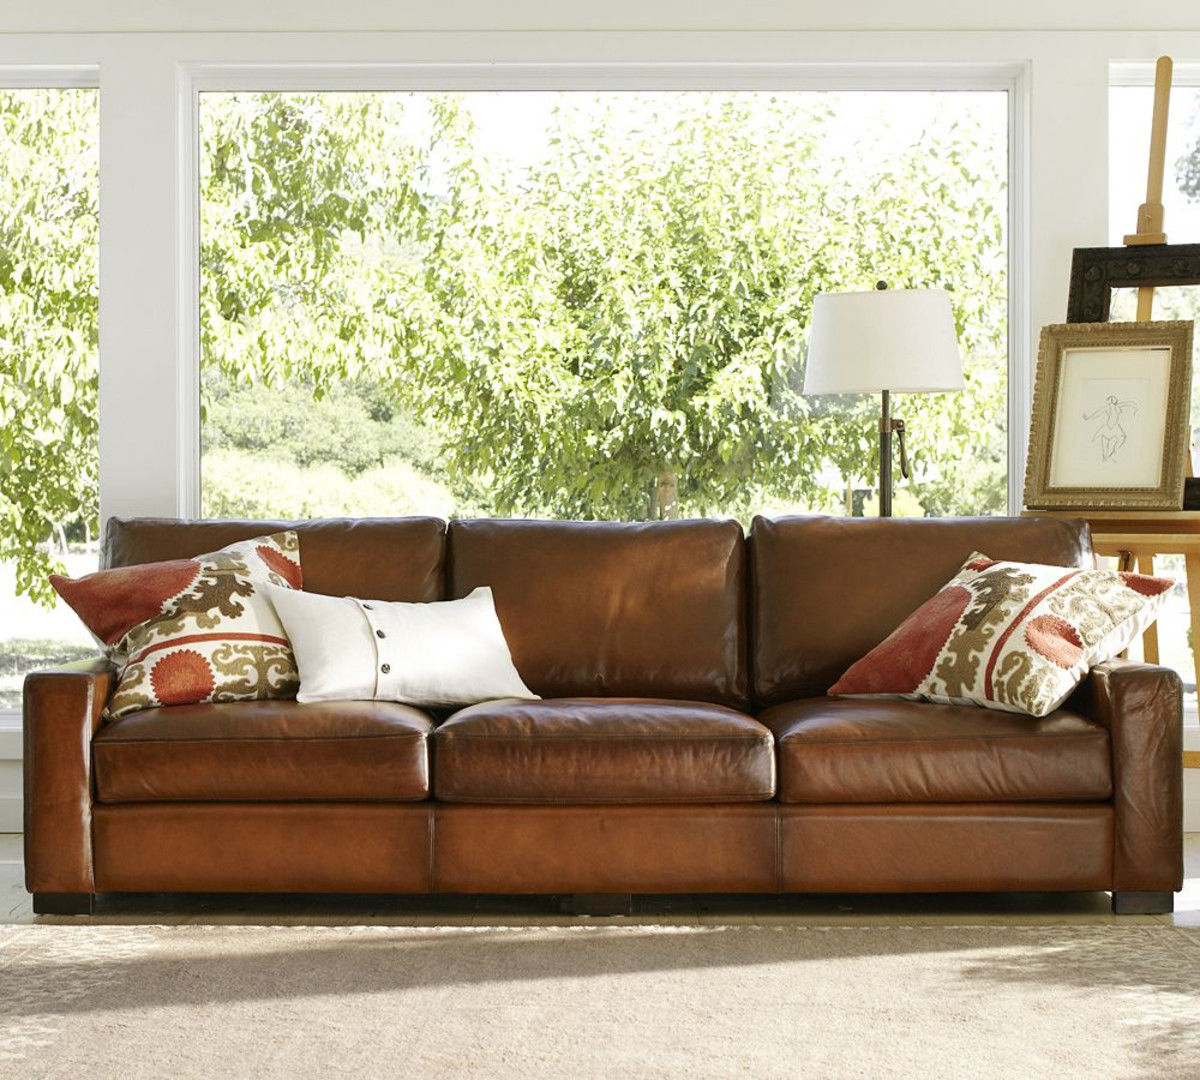 unique pottery barn grand sofa wallpaper-Superb Pottery Barn Grand sofa Model